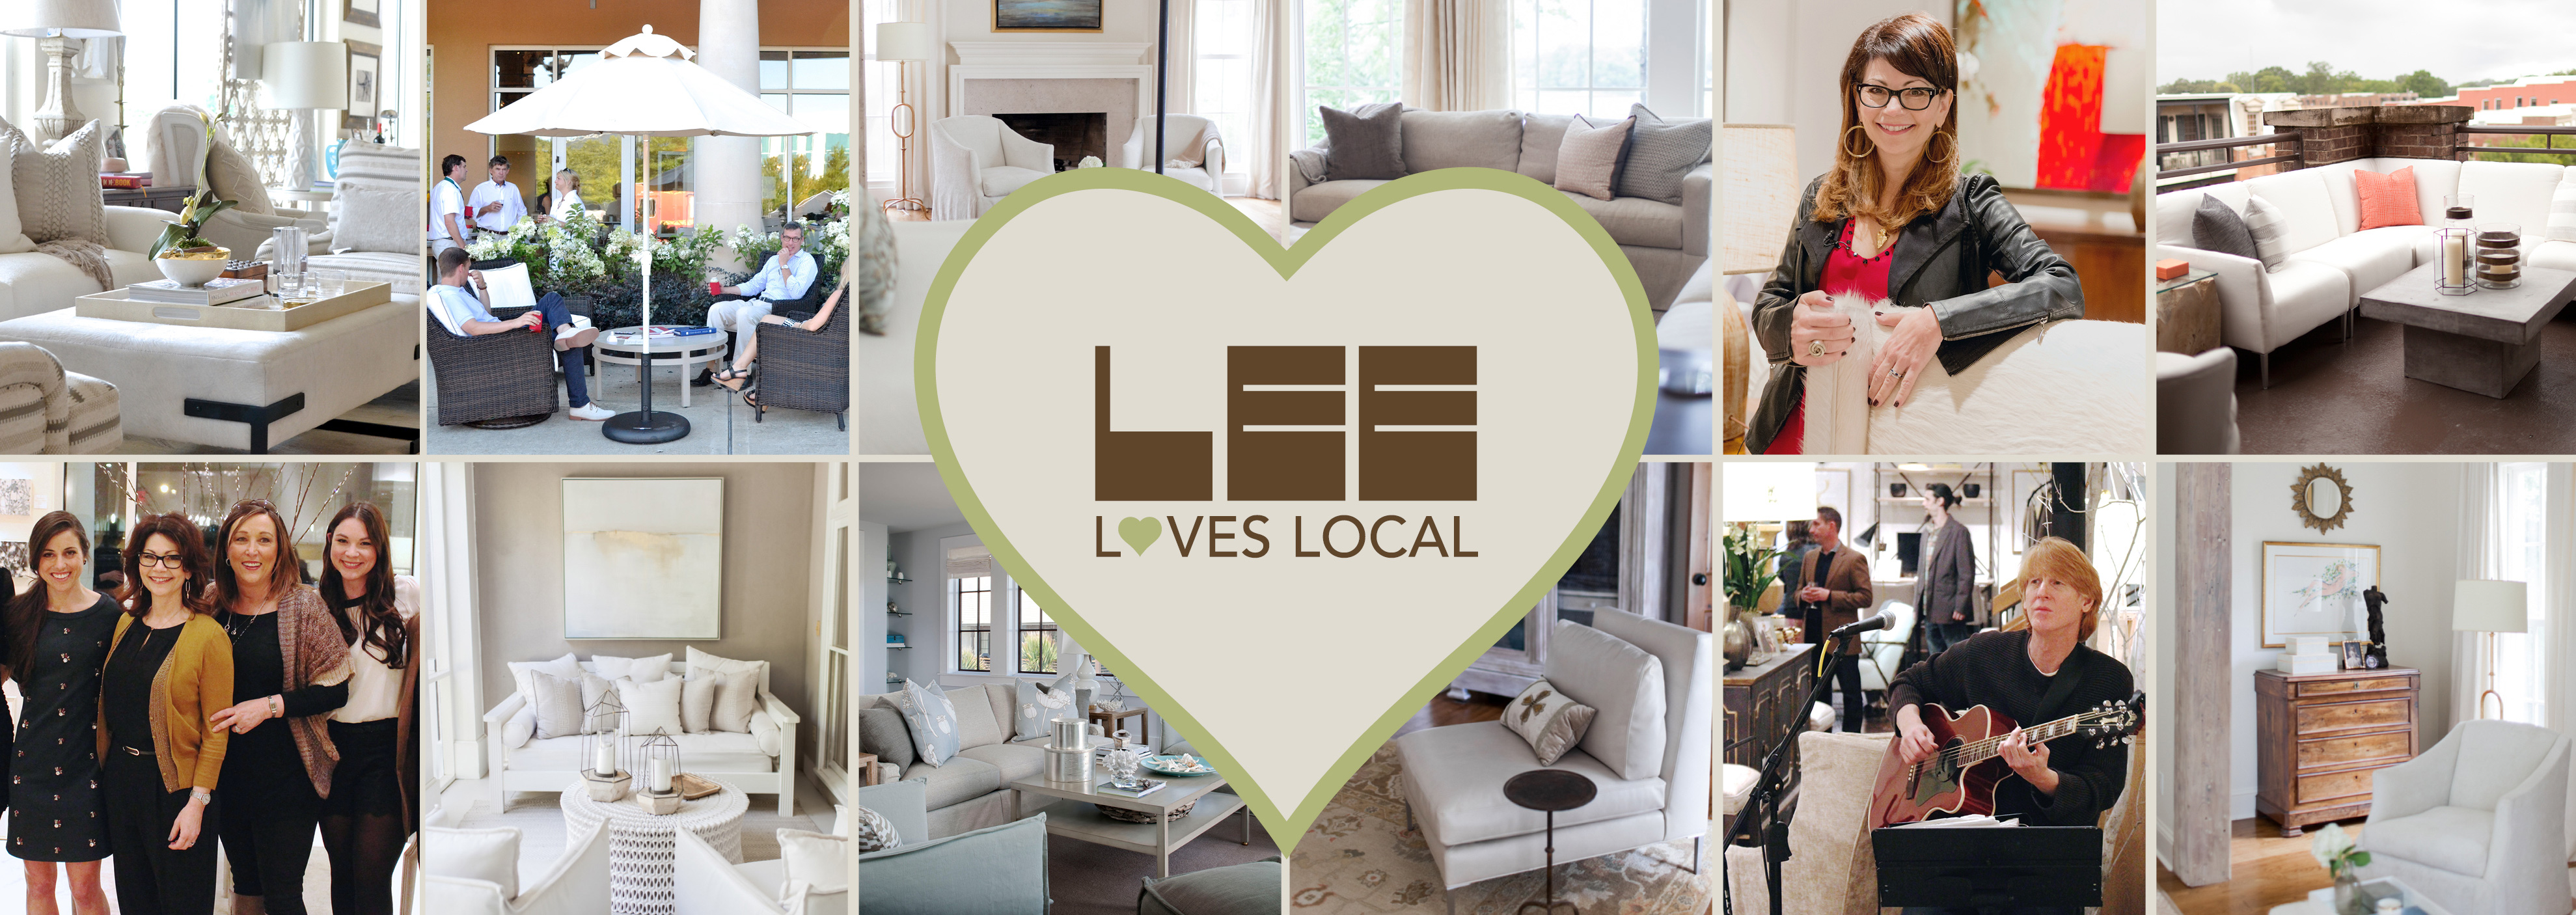 LEE-Loves-Local_ad-SH-header-crop